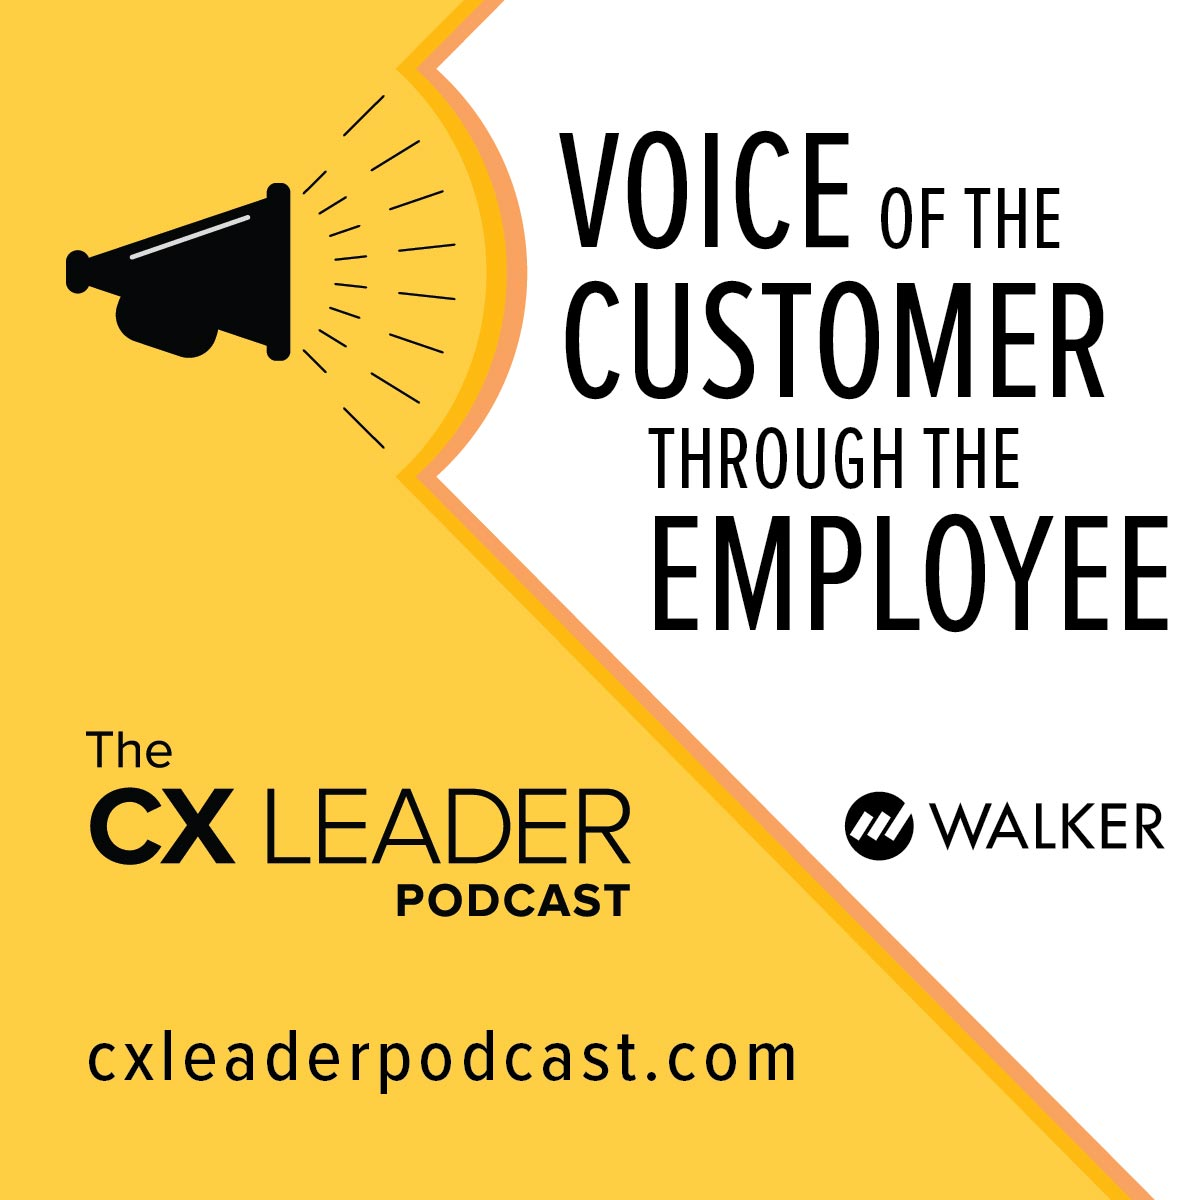 Voice of the Customer through the Employee